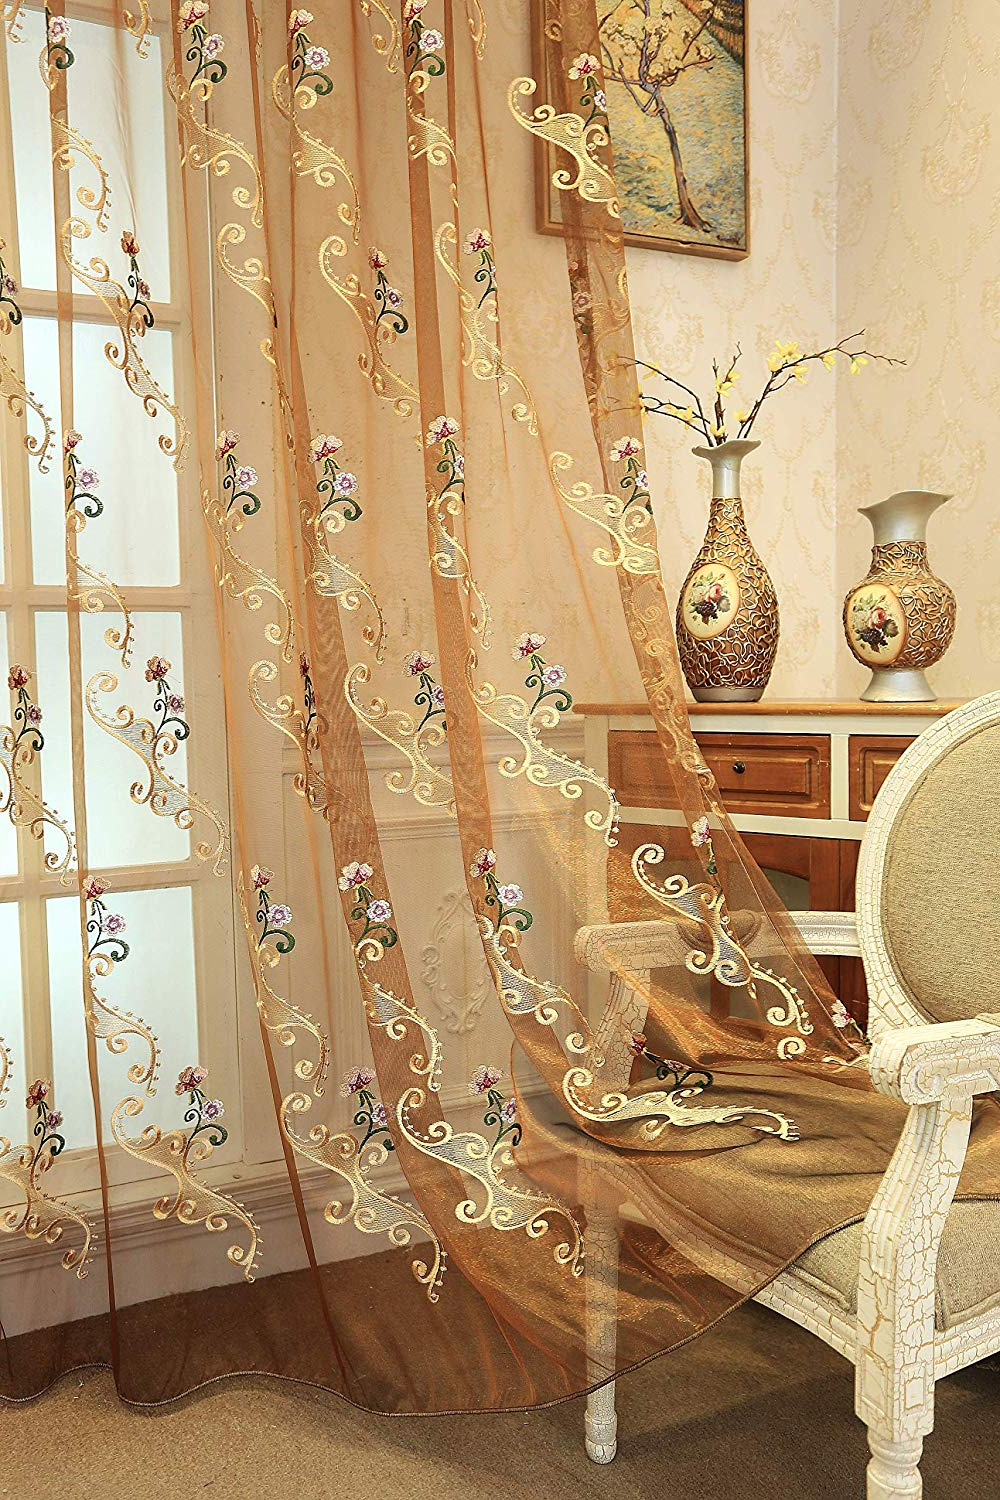 Suntown Home Decorations Grommet Sheer Curtain For Bedroom Romantic Orchid Embroidery Window Panels/treatment 84 Inches Long For Living Room – 2 Regarding 2021 Embroidered Ladybugs Window Curtain Pieces (View 10 of 20)